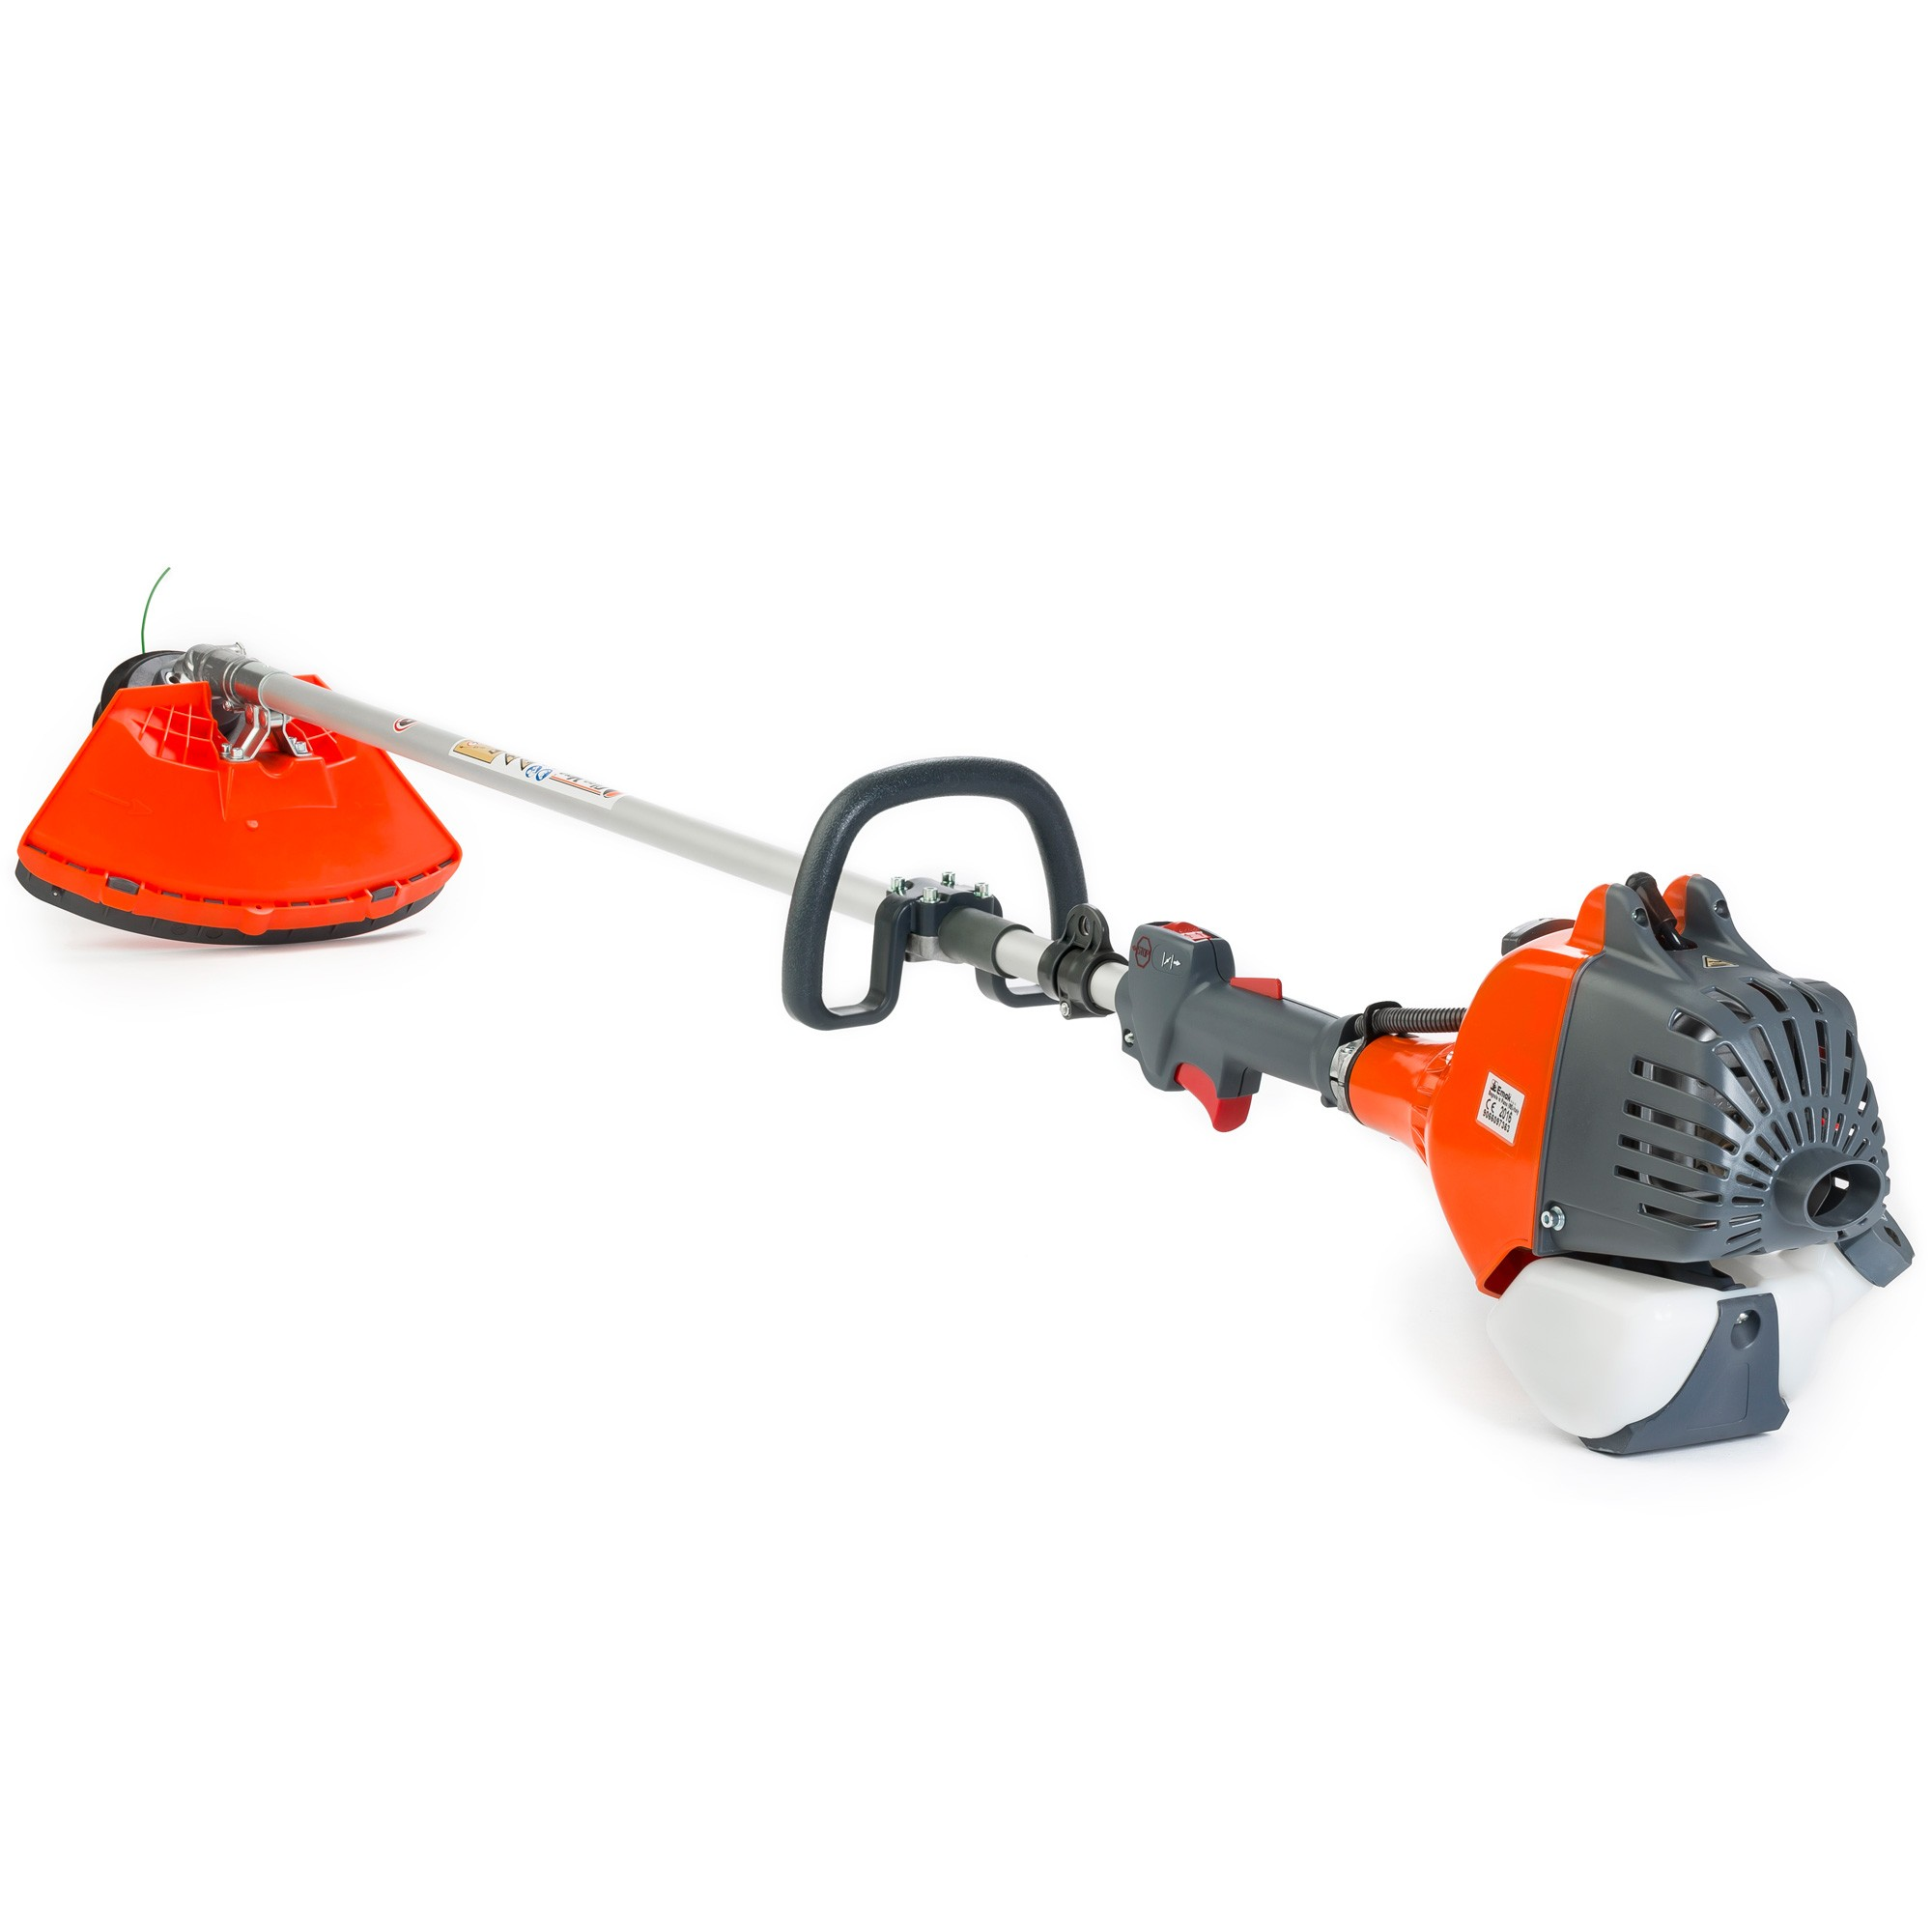 Oleo-Mac Sparta 250-S Low-Emission Petrol Brushcutter